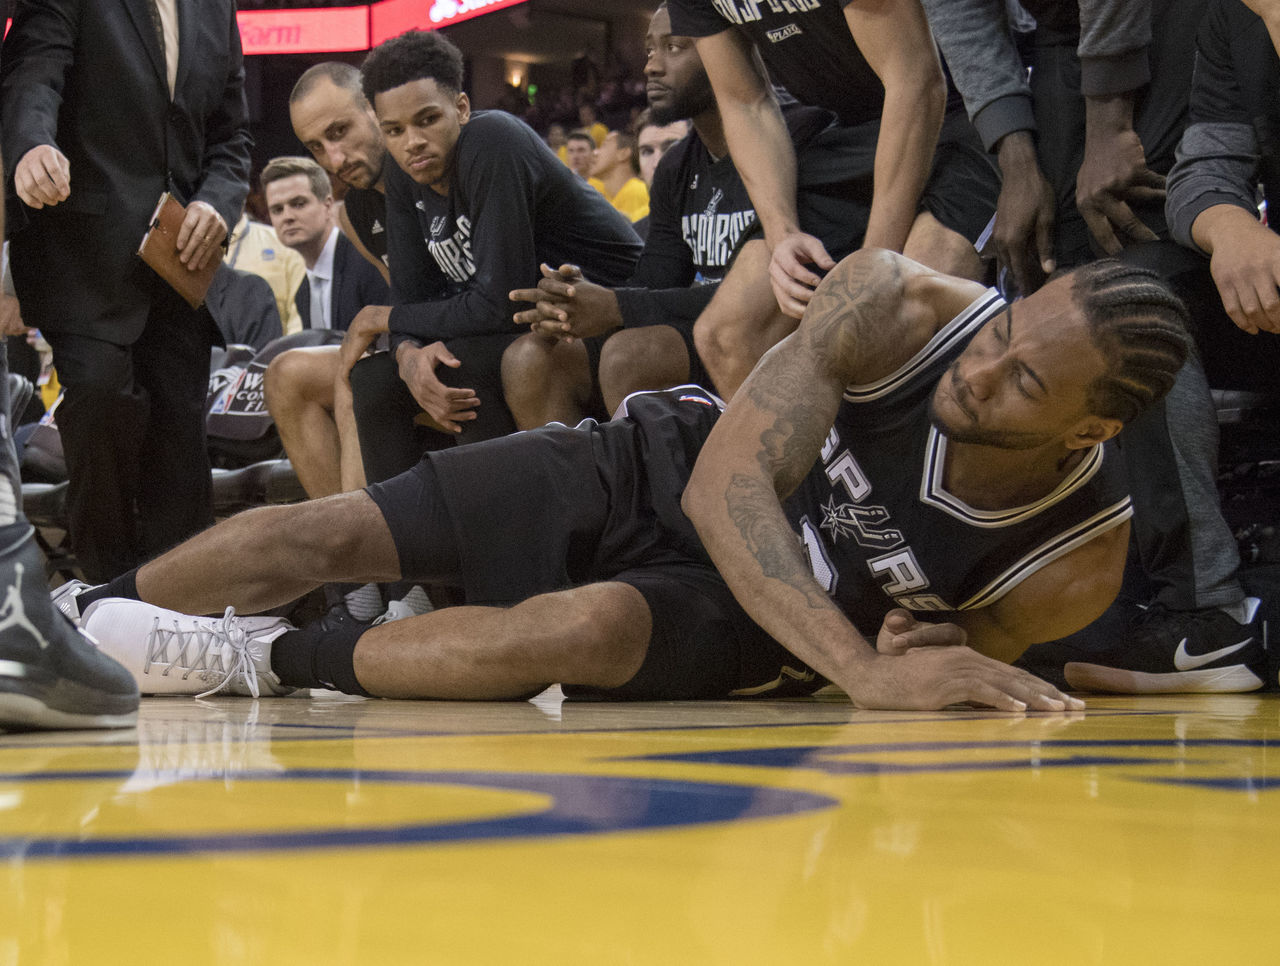 Cropped 2017 05 14t222146z 1099854047 nocid rtrmadp 3 nba playoffs san antonio spurs at golden state warriors